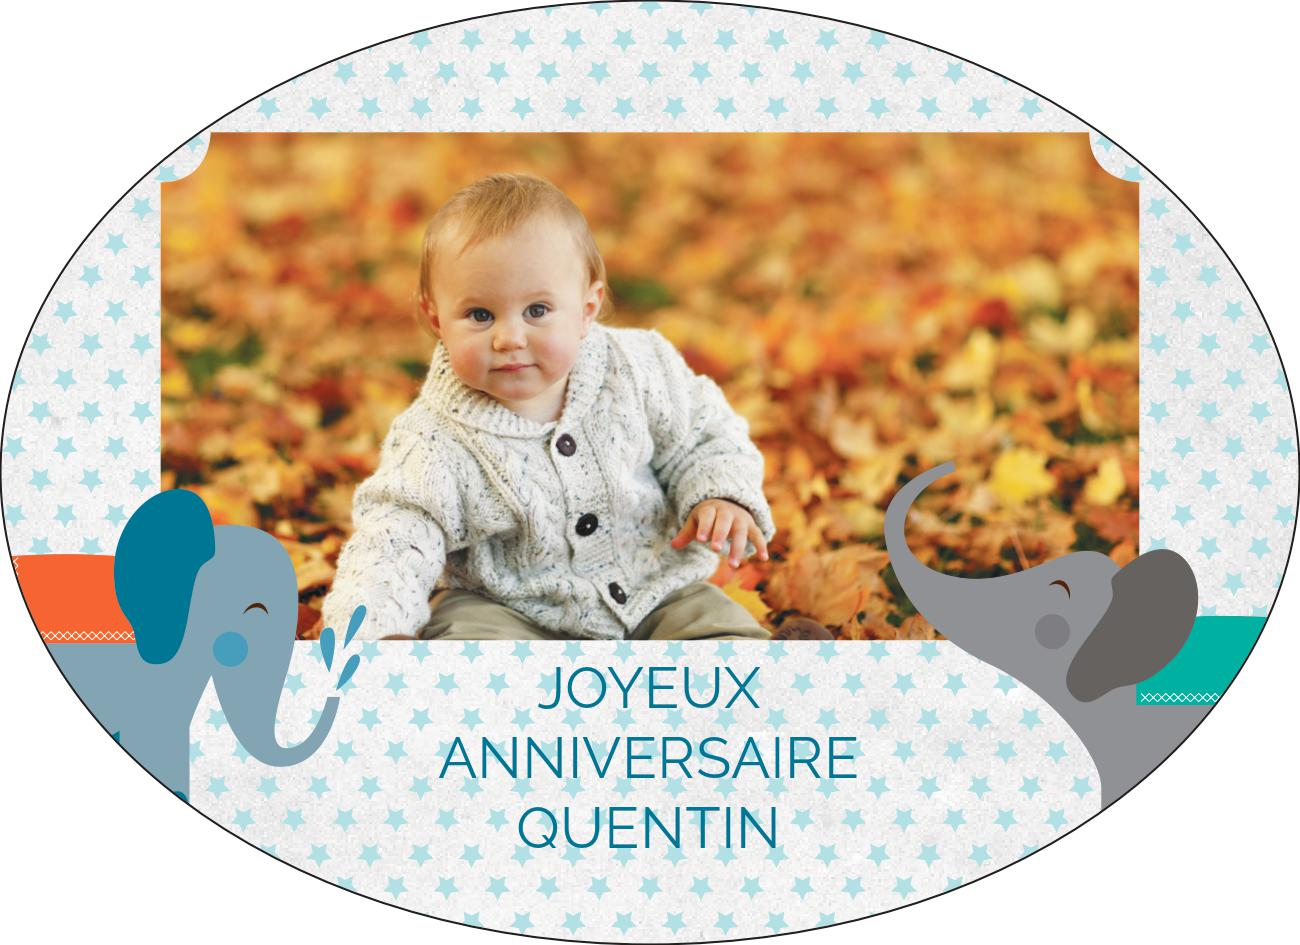 birthday-children-quentin_has-image